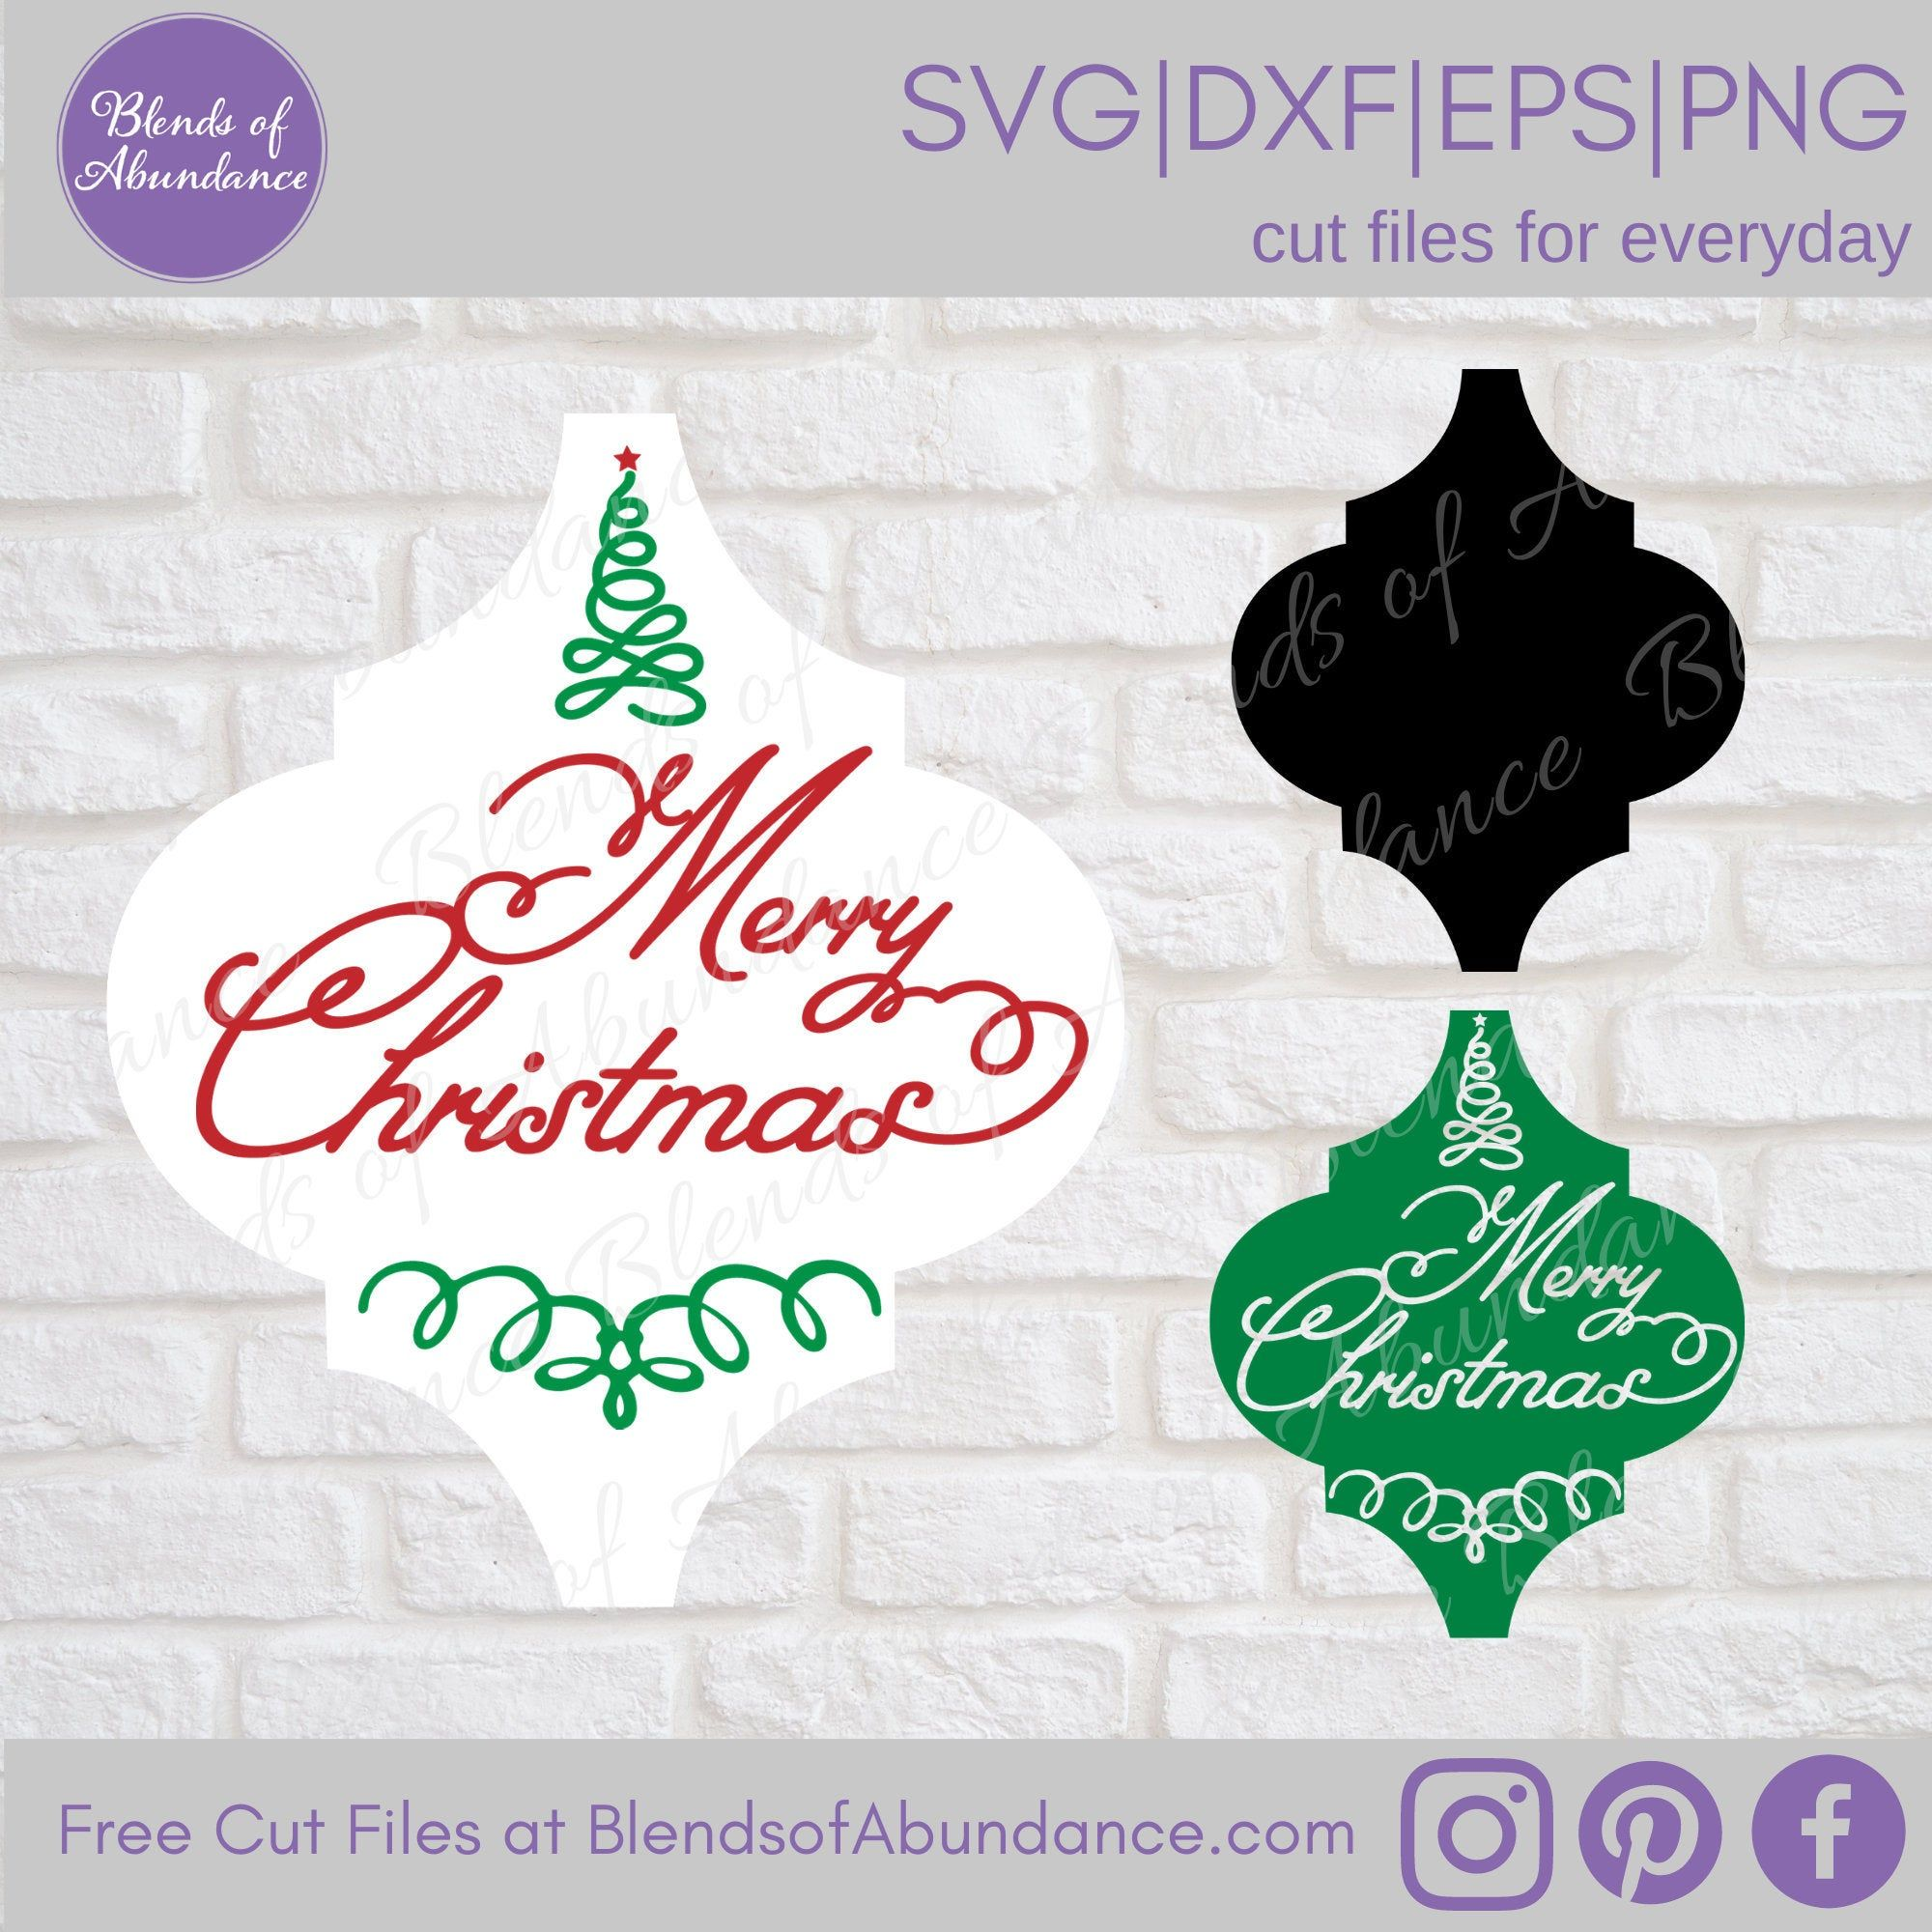 Merry Christmas Ornament Svg Tile Ornament Svg Tile Ornament Template Lantern Tile Christmas Ornament Arabesque Tile Christmas Tile In 2021 Christmas Ornaments Ornament Template Arabesque Tile